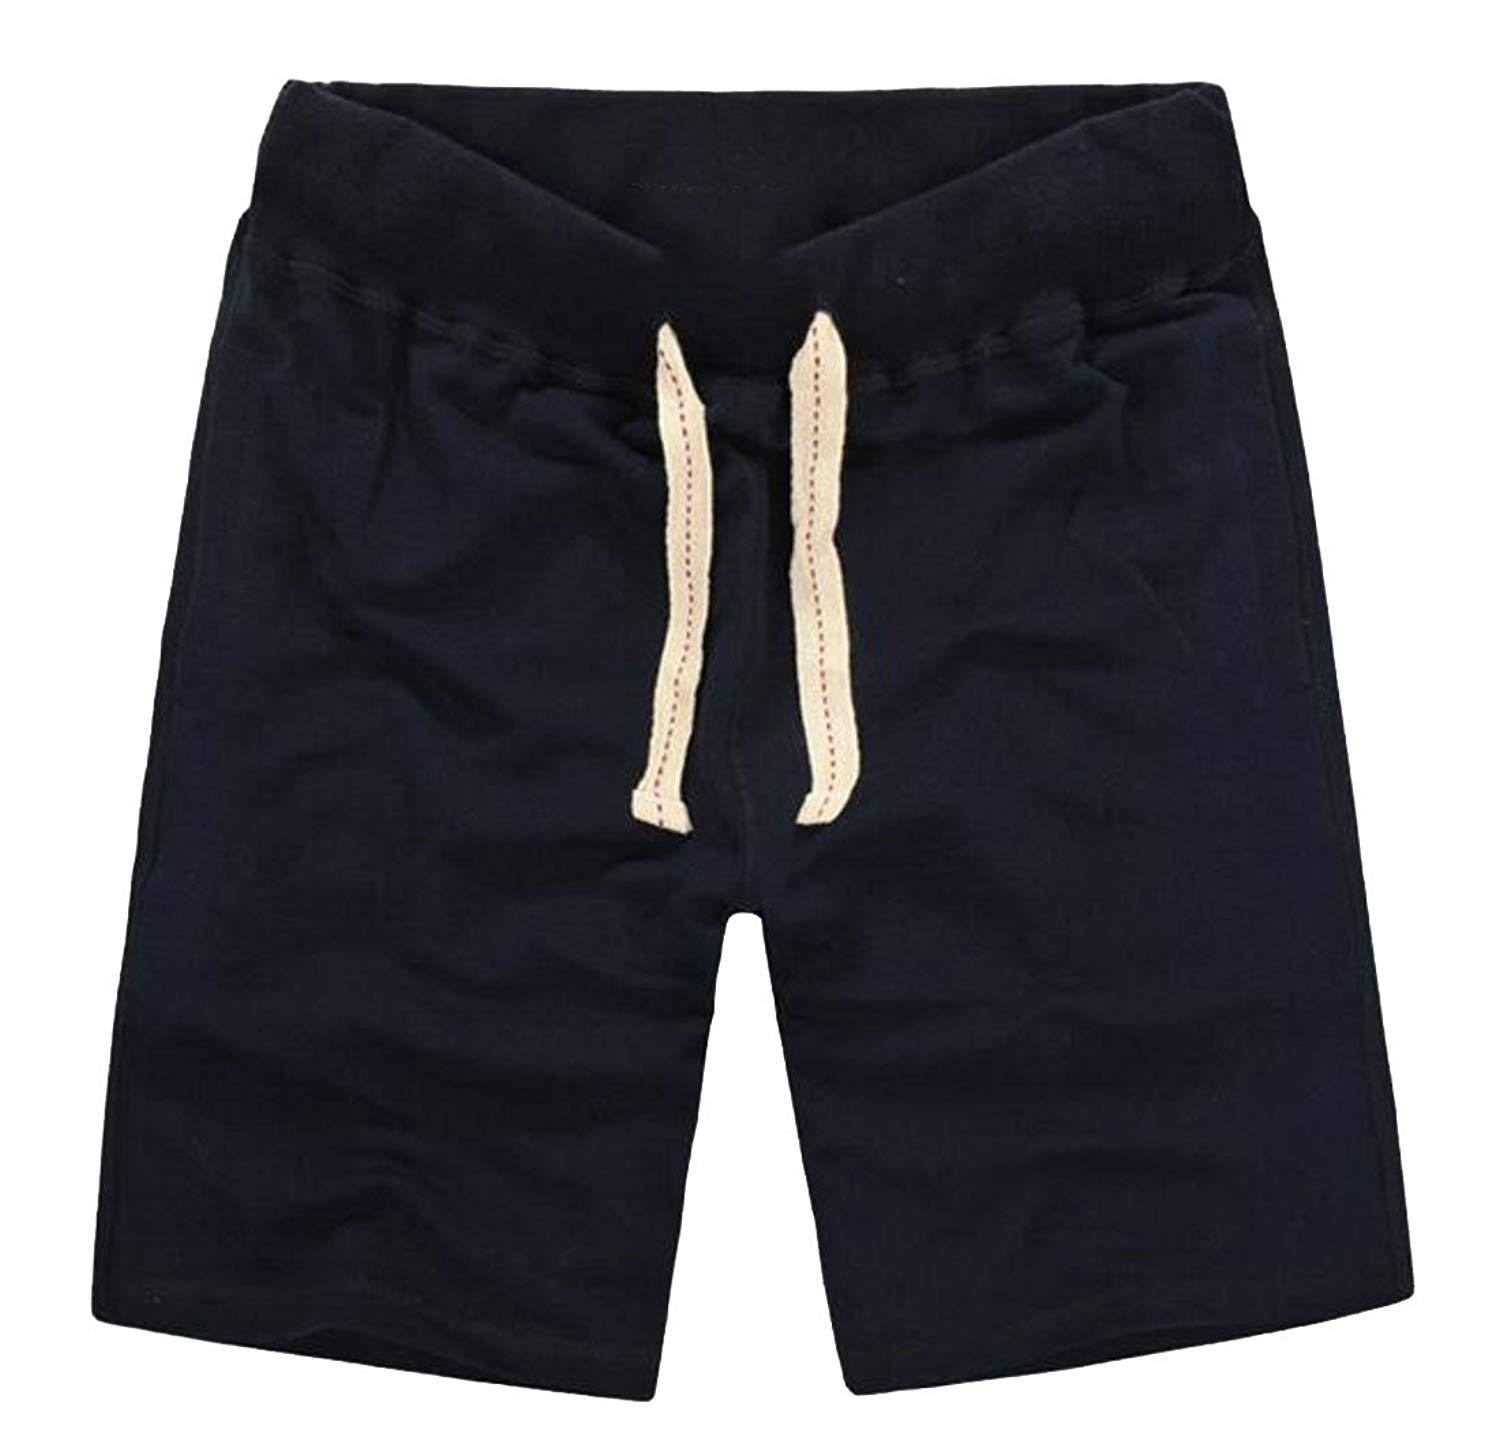 8253852d63 Get Quotations · Pivaconis Mens Short Pants Active Comfort Stretch Beach  Drawstring Cotton Shorts